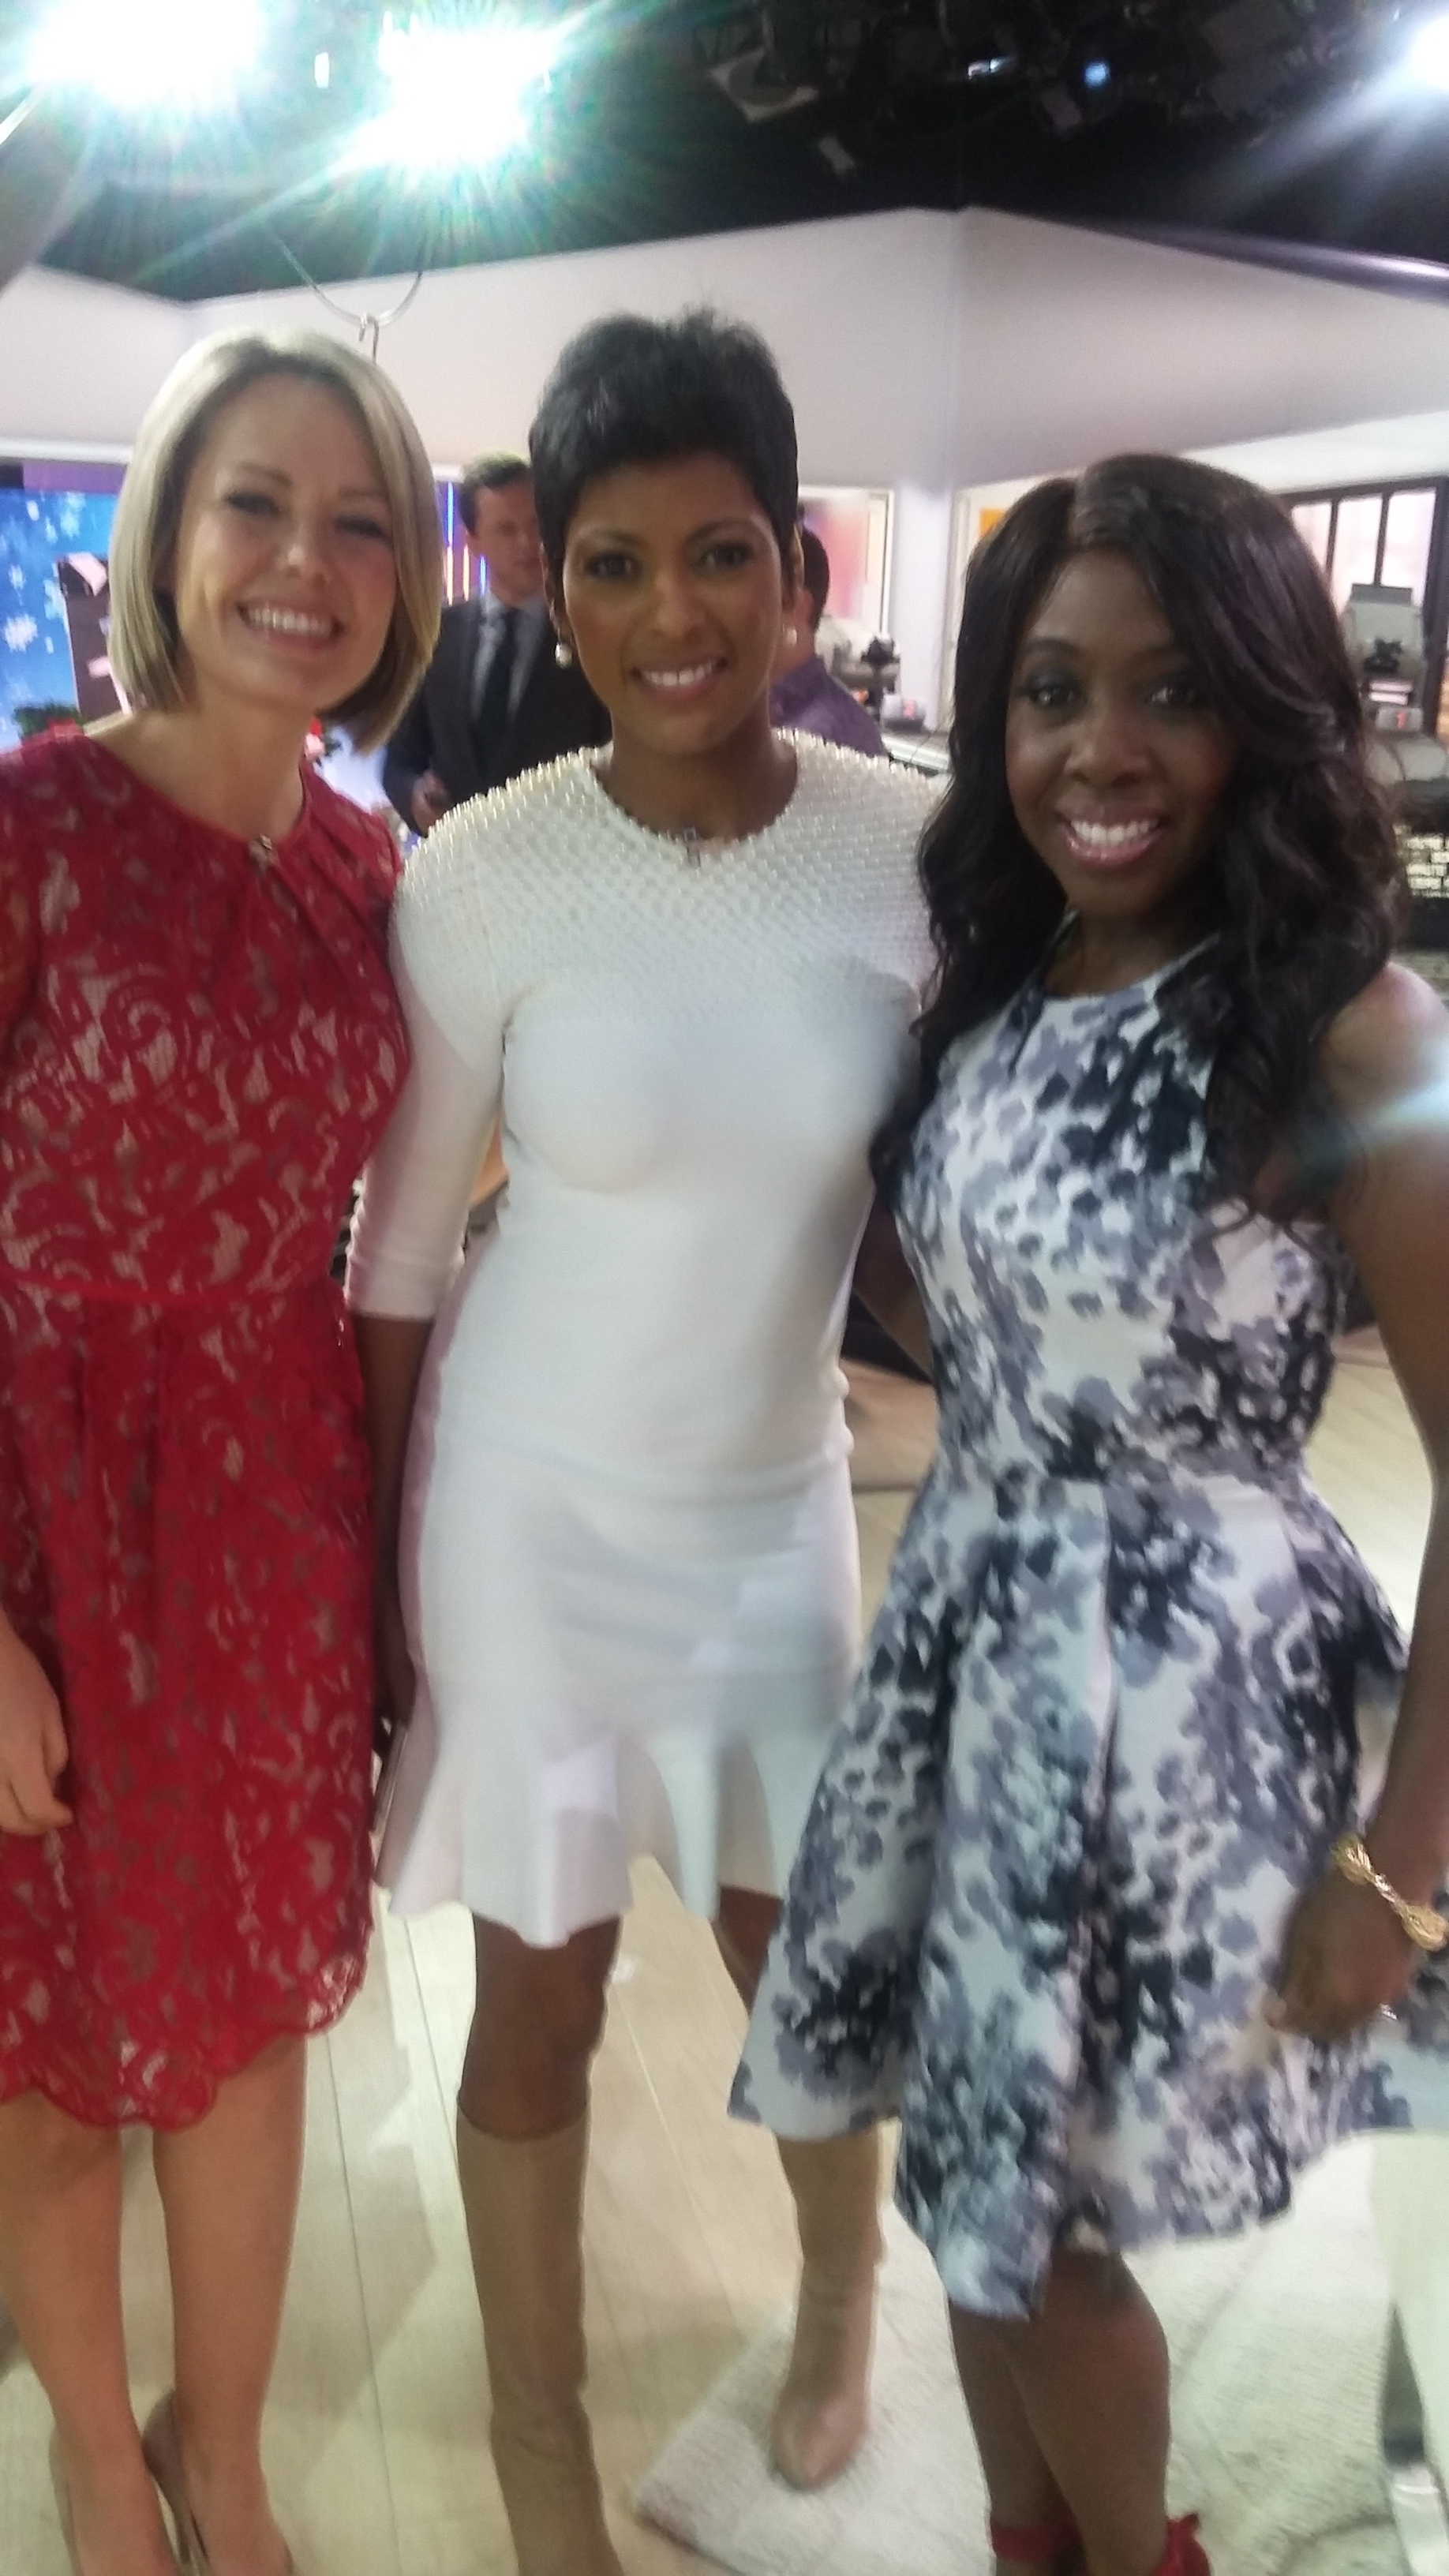 After our segment. This is me with TODAY Show anchors  Dylan Dreyer (l) and Tamron Hall (c).